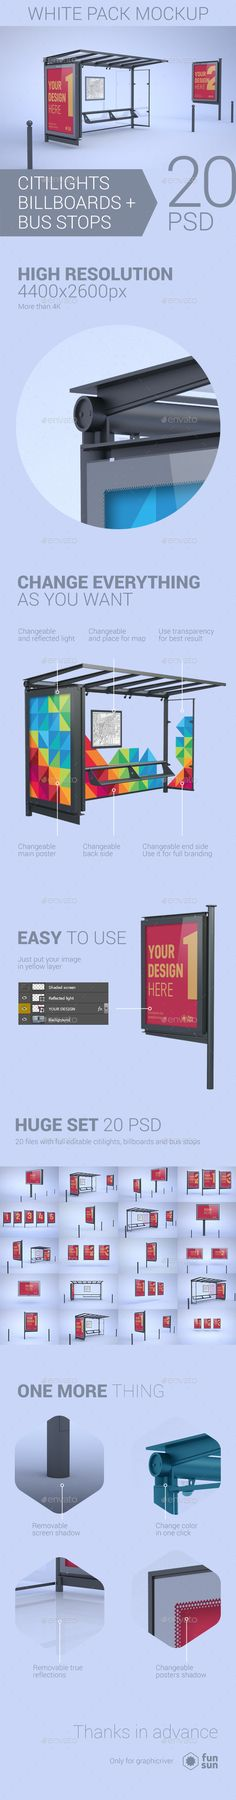 Citylights, Billboards, Bus Stops. White Mockup Design Template - Signage Print Mock Up Design Template PSD. Download here: https://graphicriver.net/item/citylights-billboards-bus-stops-white-mockup/16965666?s_rank=8&ref=yinkira